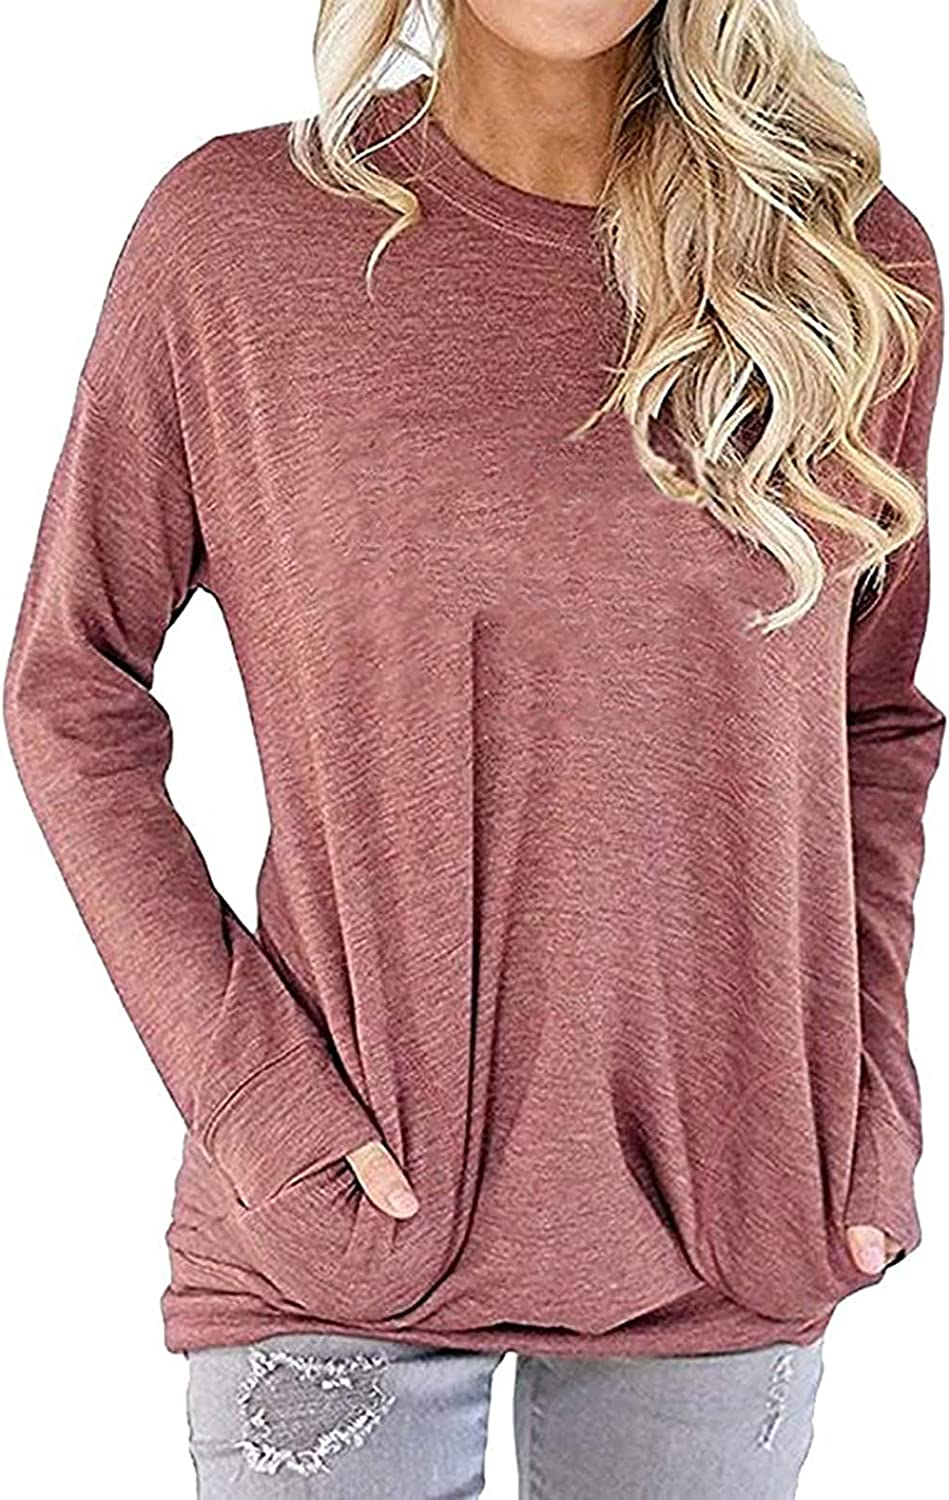 Amstt Pocket Shirts for Women Casual Sweatshirt Loose Fit Tunic Top Baggy Comfy Blouses